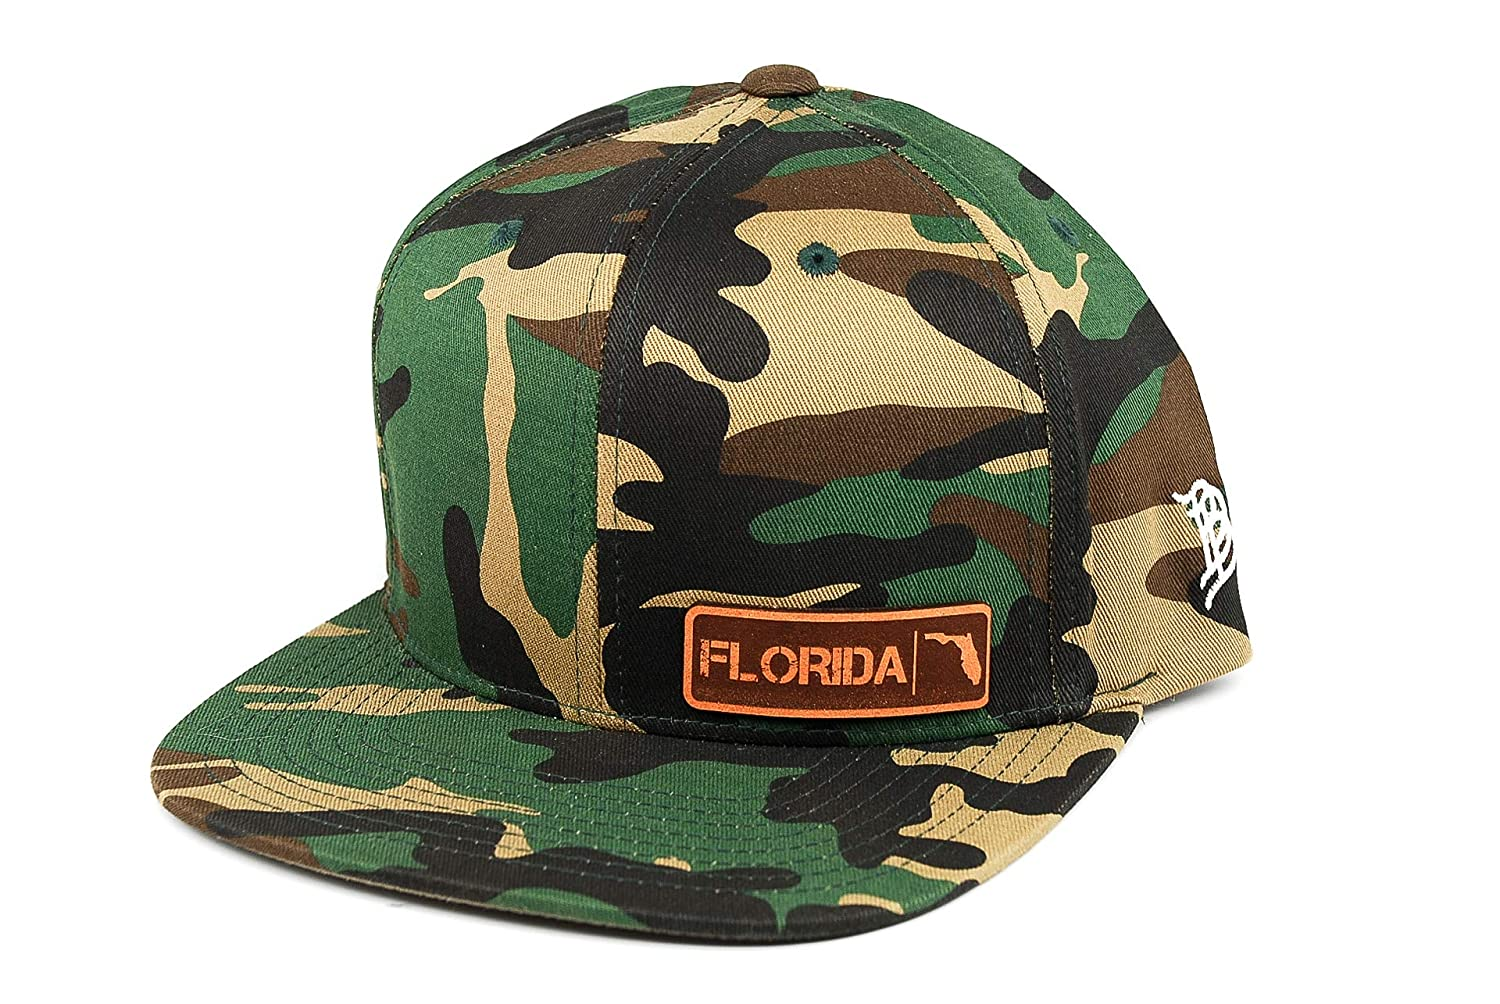 Branded Bills /'Florida / Native Leather Patch Snapback Hat OSFA//Camo